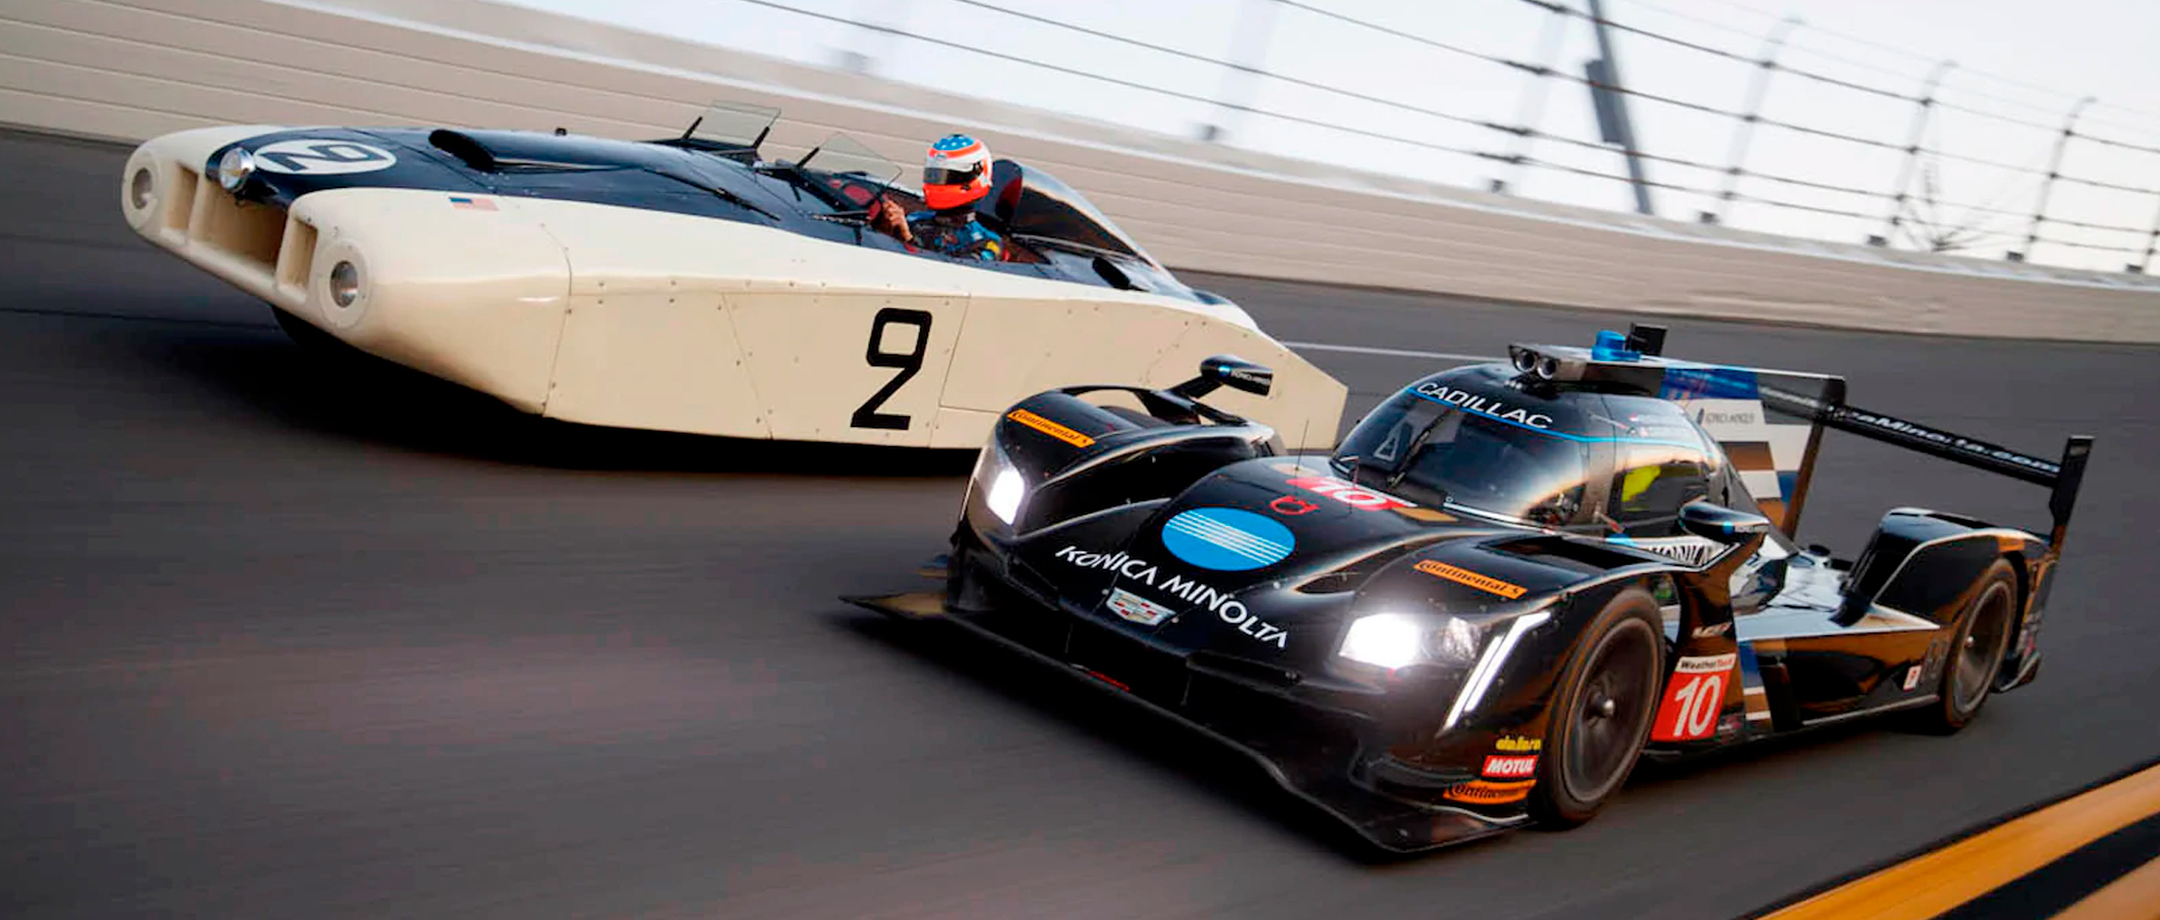 Cadillac - heritage racing 1950 24 Hours of Le Mans race saw the entry of two Cadillac Series 61 racers  - vs - Cadillac DPi-V R prototype racer, - won its debut race at the 2017 Rolex 24 at Daytona - speedway